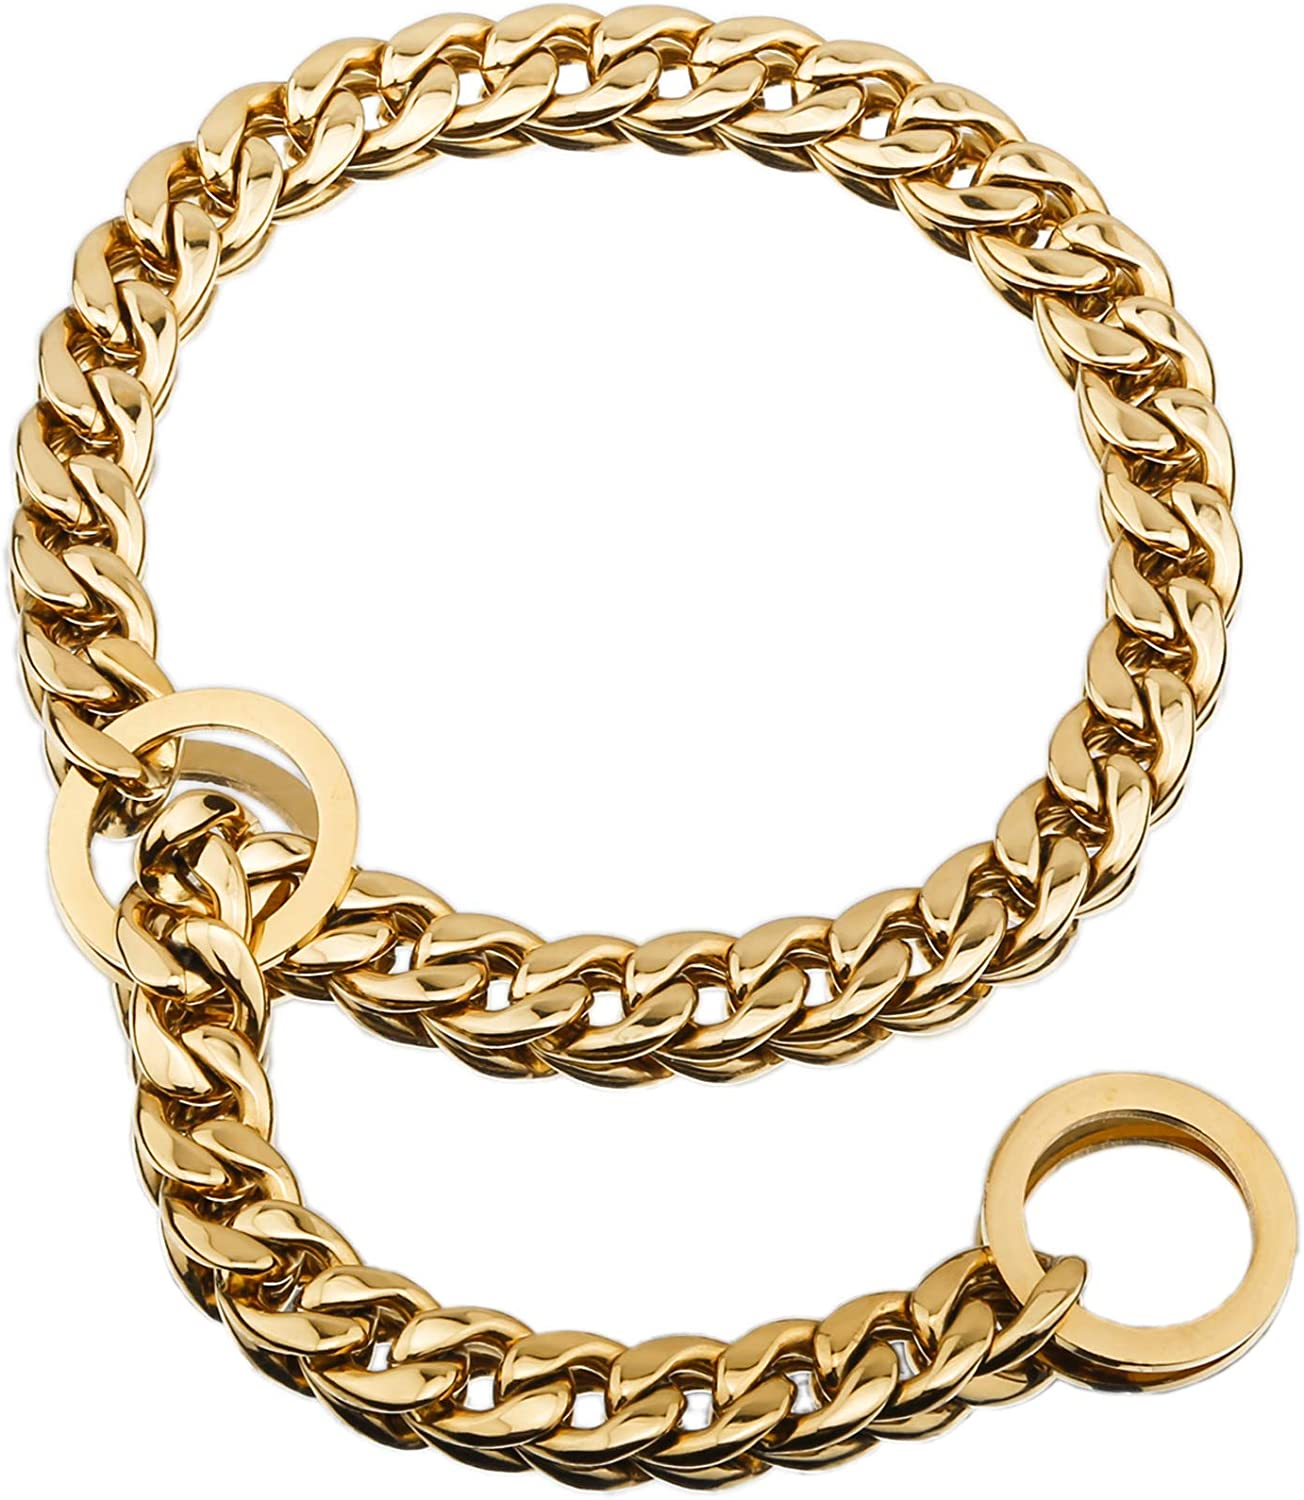 ebChains Hefty Thick Gold/Silver Dog Chain Collar, 12/15mm Width 12-26